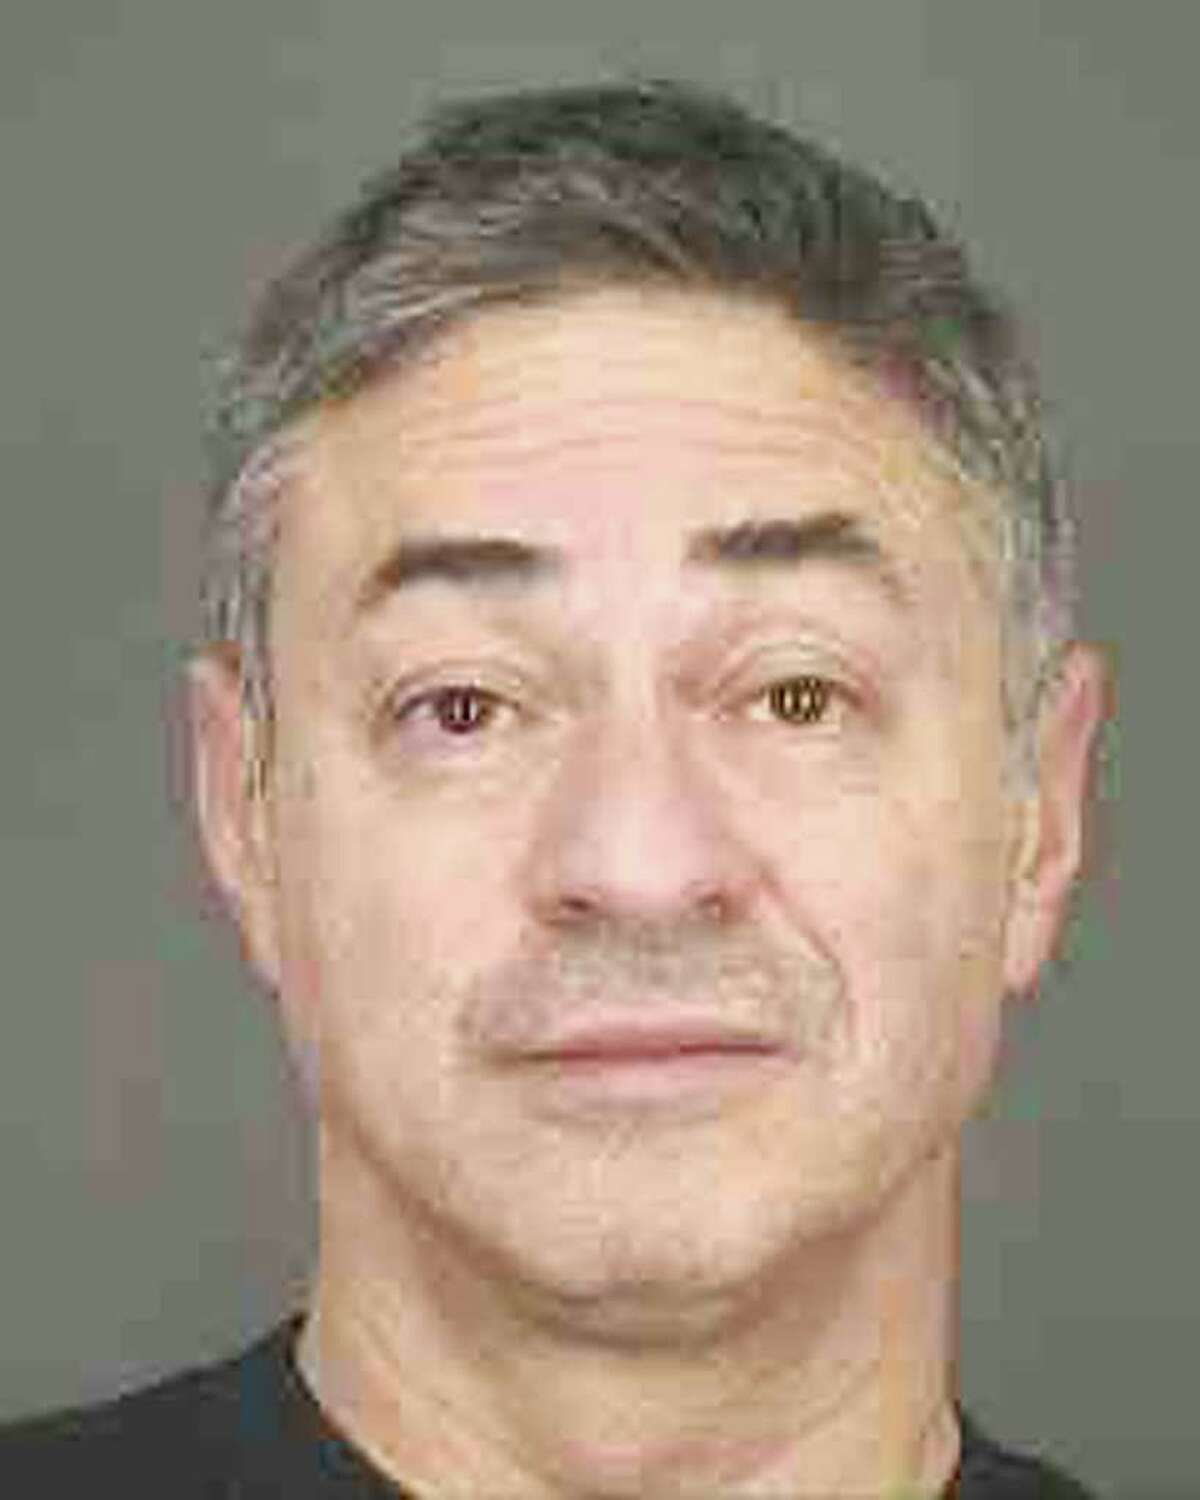 Clifford Berken, of Stamford. Photo courtesy of the Westchester District Attorney's office